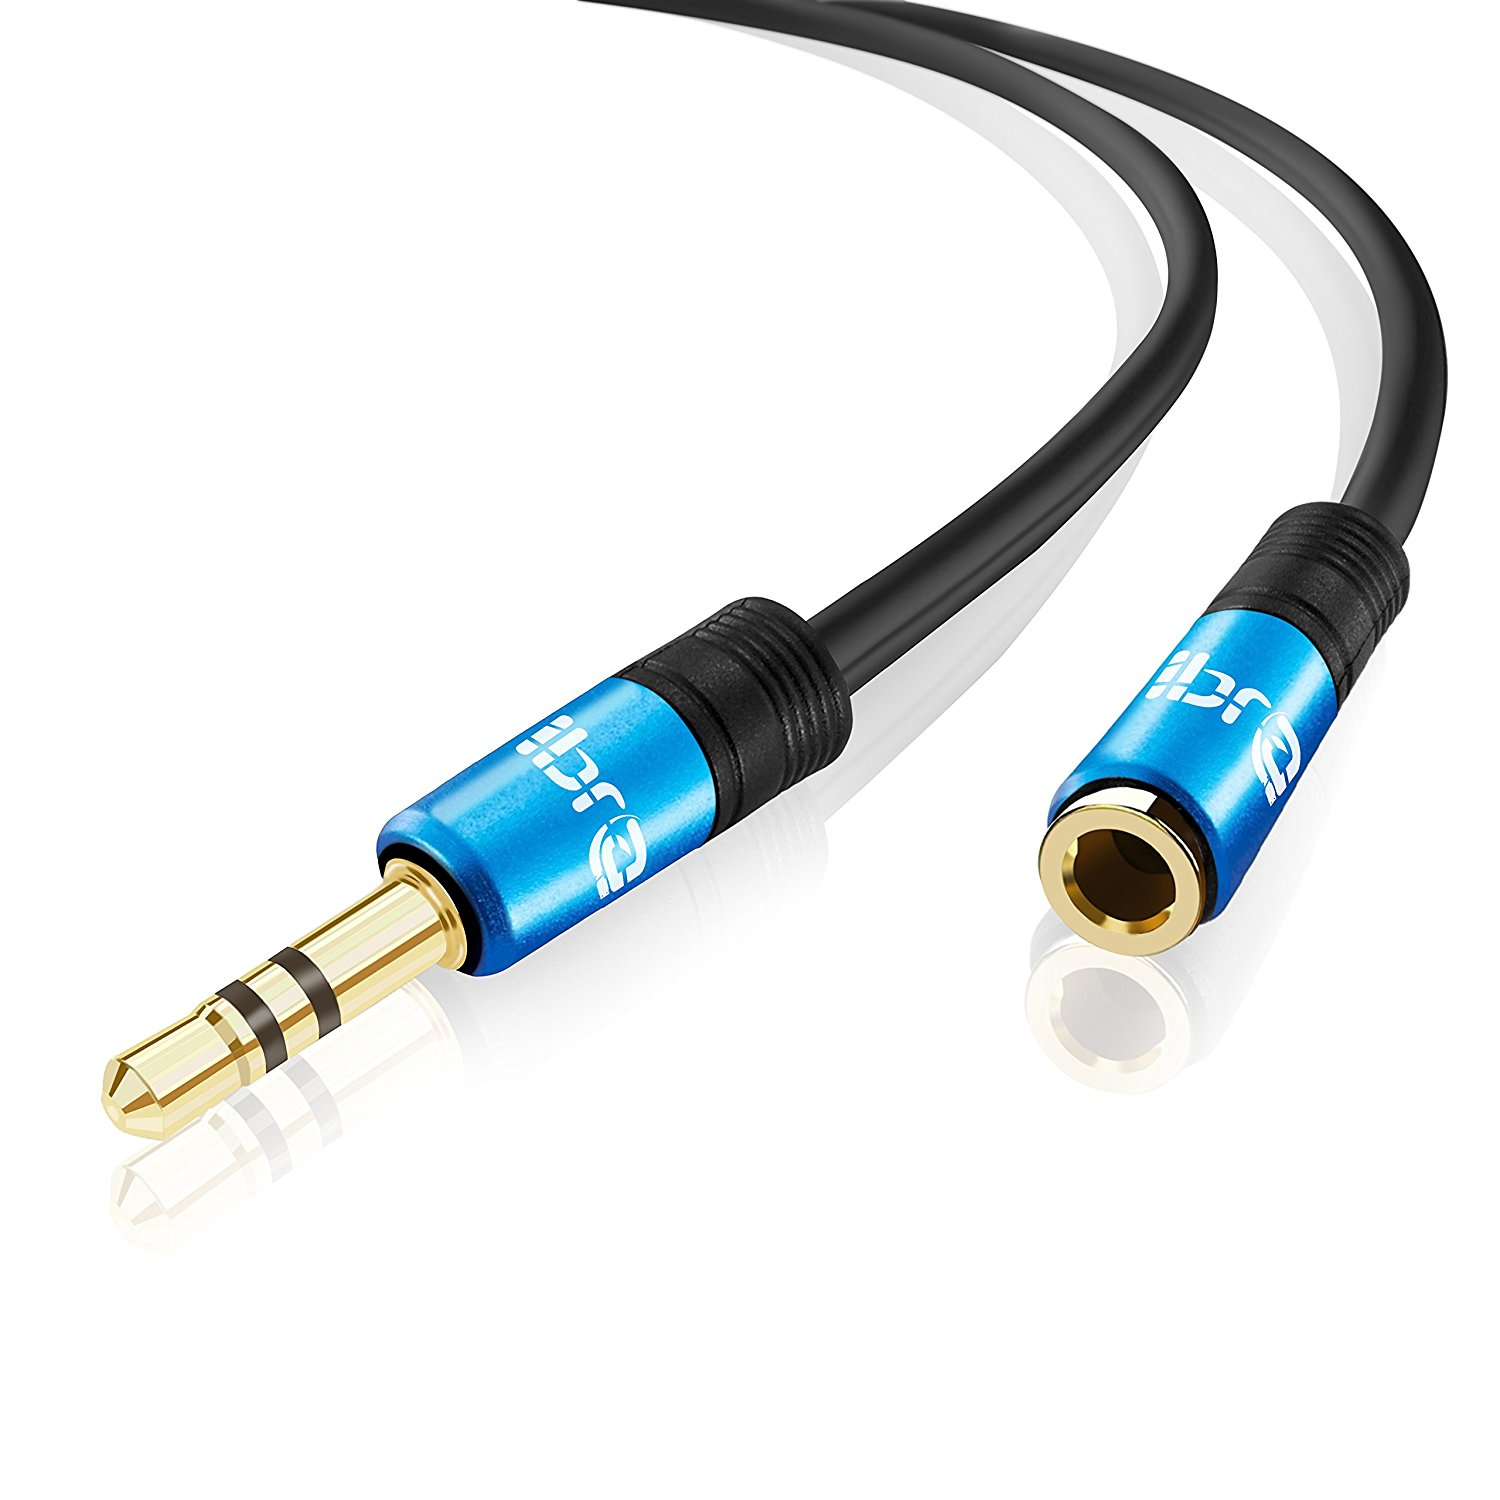 IBRA 1M Stereo Jack Extension Cable 3.5mm Male > 3.5mm Female - Blue